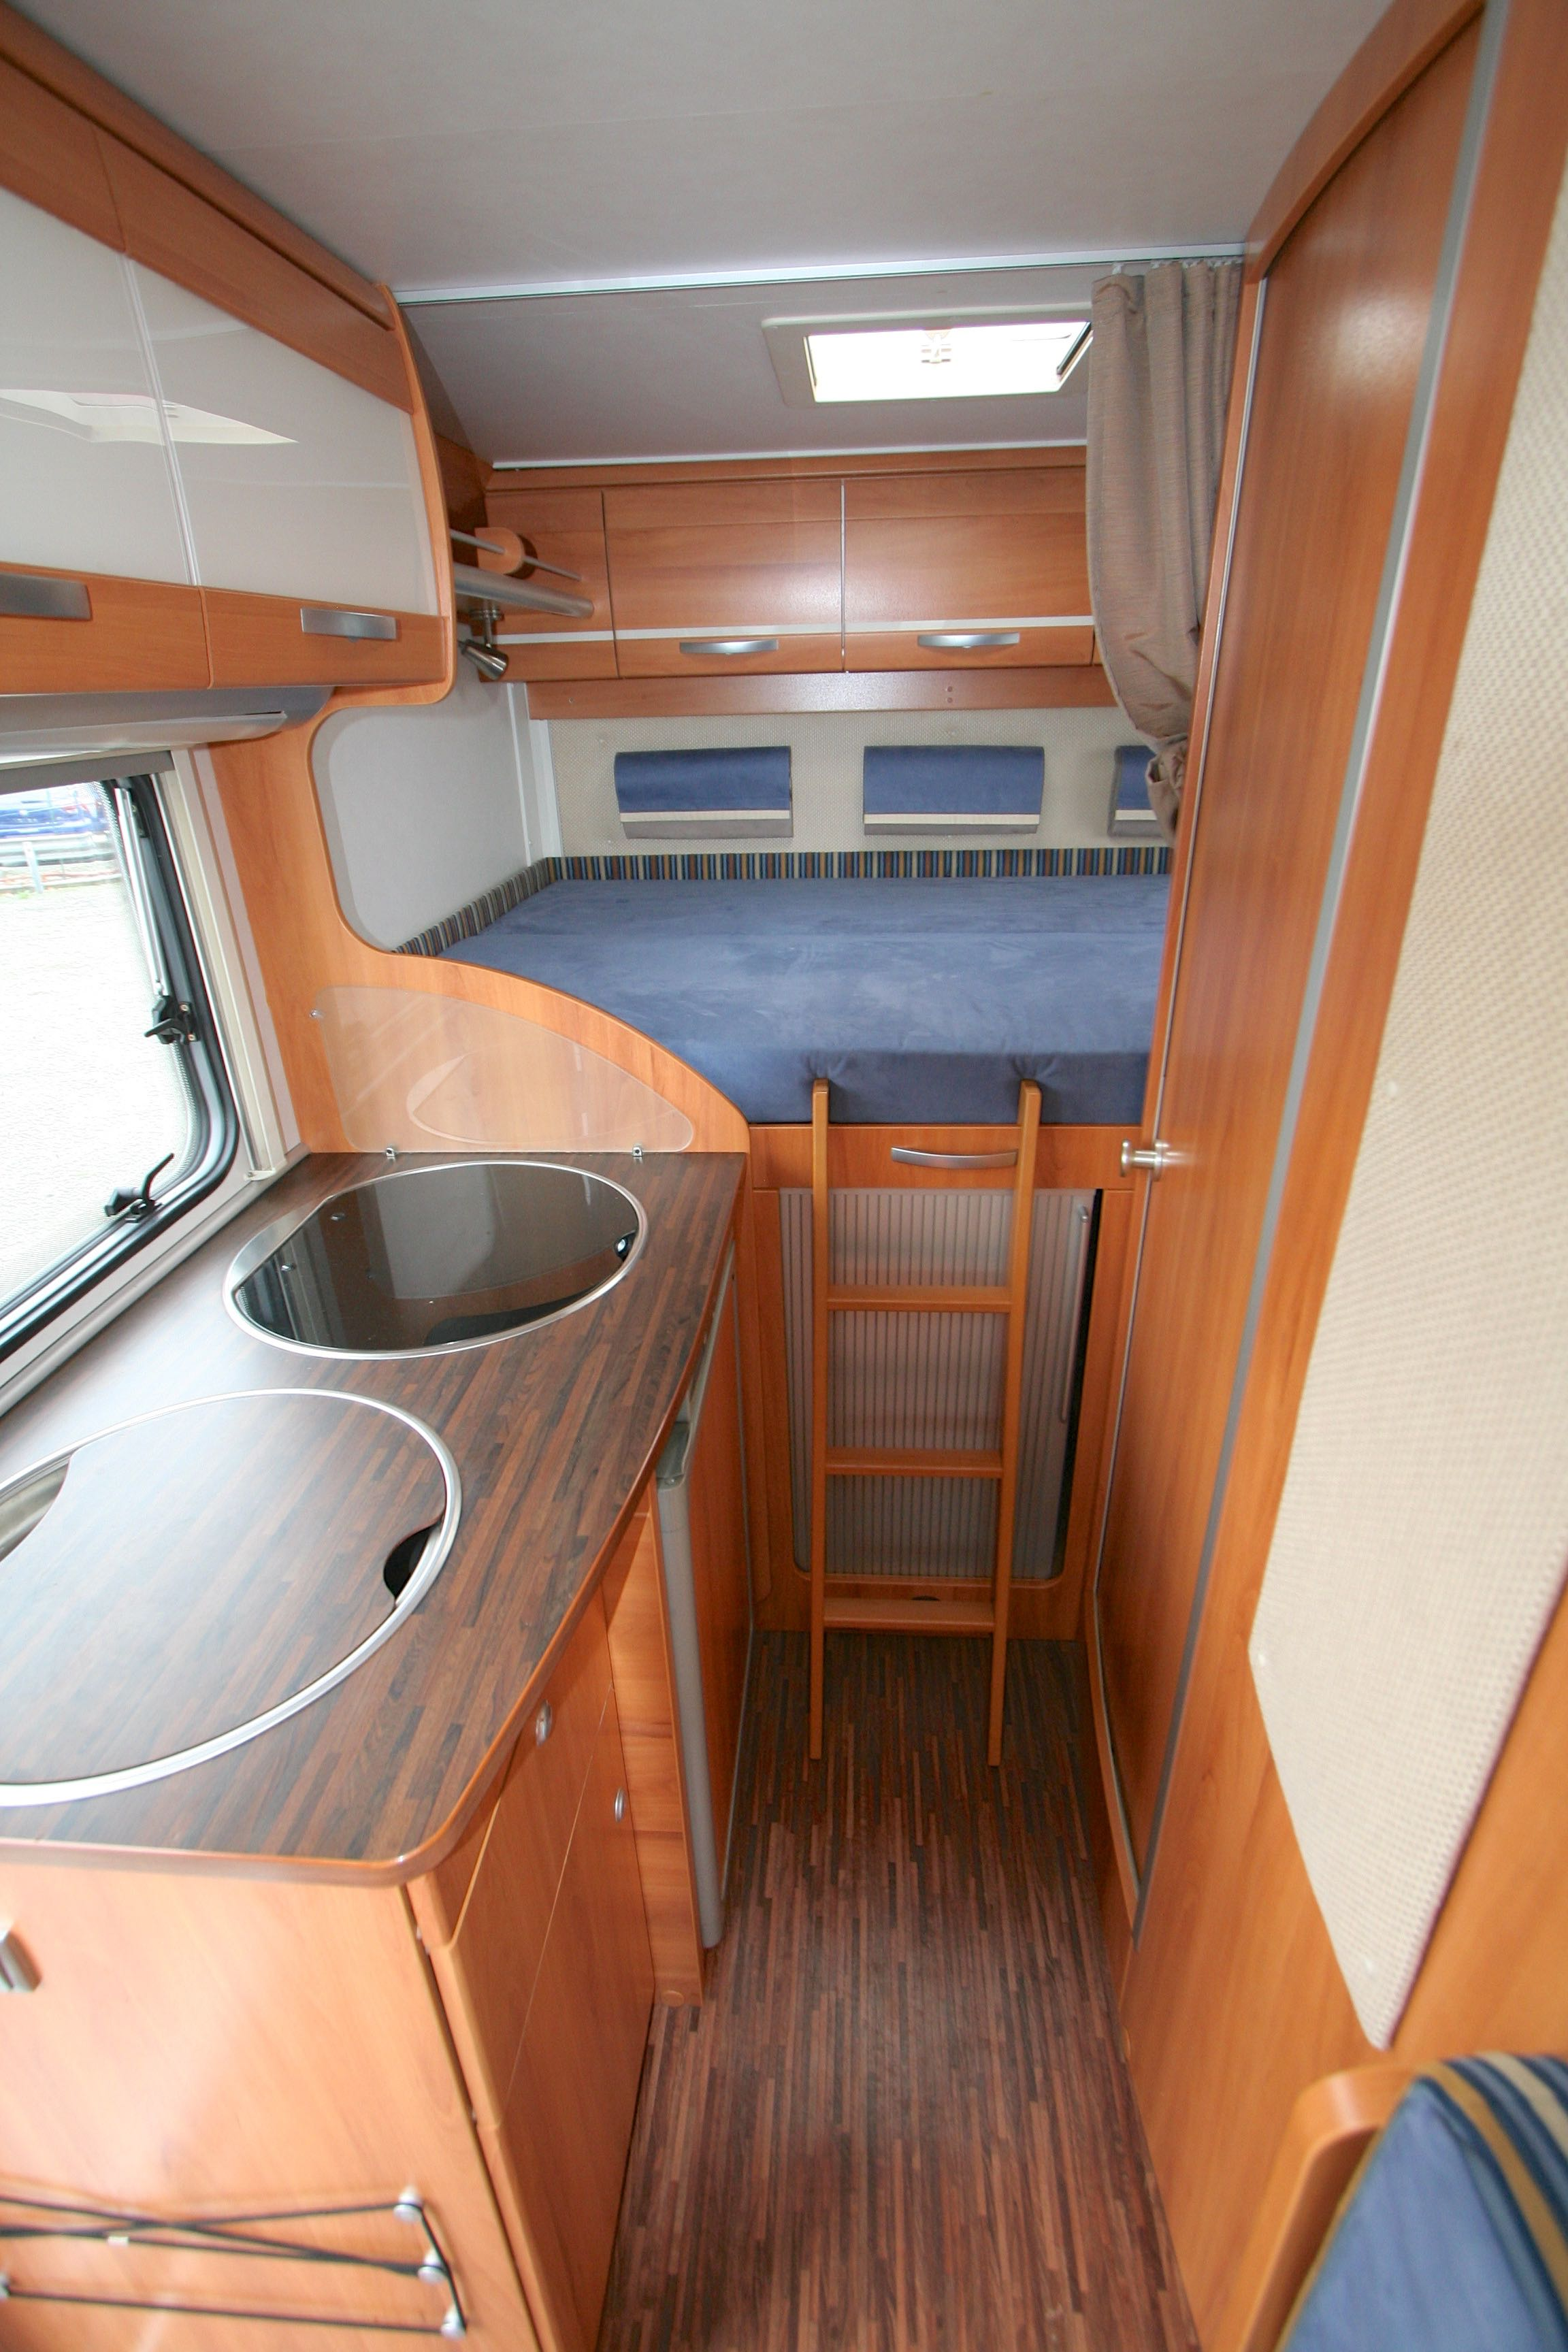 hymer exis i 512 occasion de 2008 - ford